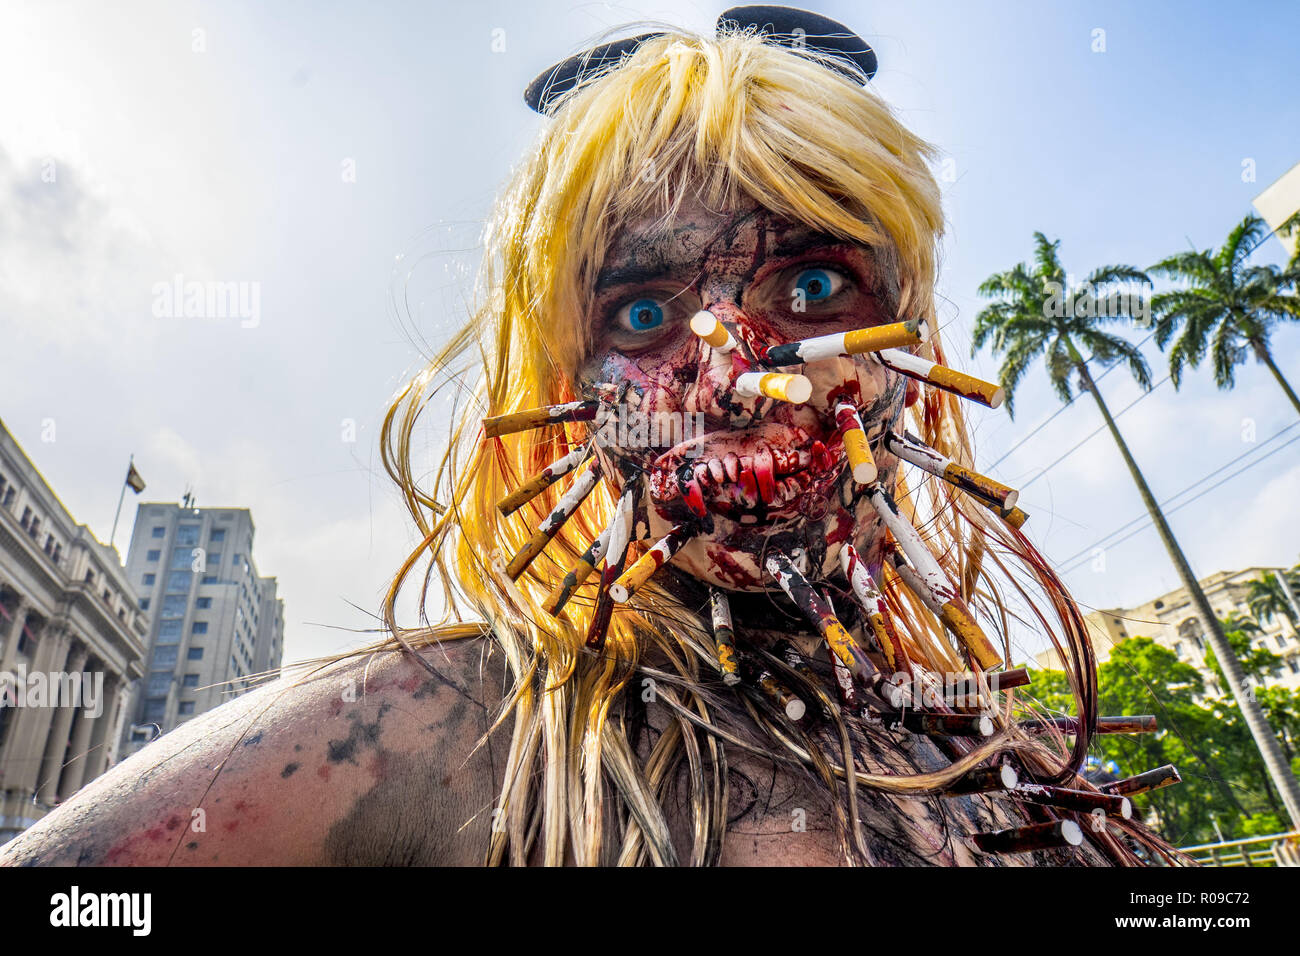 Sao Paulo, Brazil. 2 November 2018. ZOMBIE WALK BRAZIL: People take part in the annual Zombie Walk on November 2, 2018, in São Paulo. People dress and use make-up to make themselves look like zombies and other characters from horror movies. Credit: Cris Faga/ZUMA Wire/Alamy Live News - Stock Image